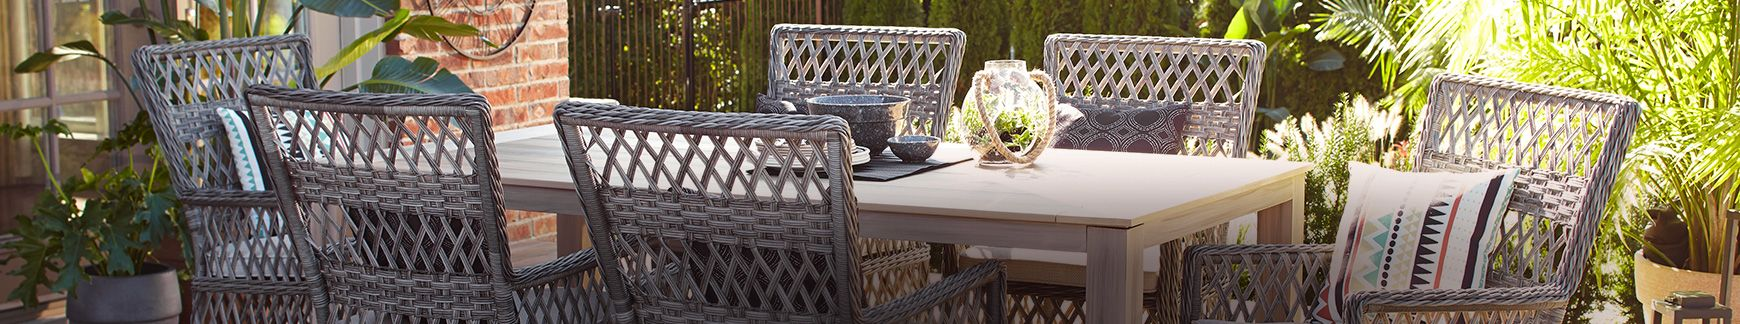 lemans wicker dining piece b furniture amazonia oval sets deluxe n set outdoors patio